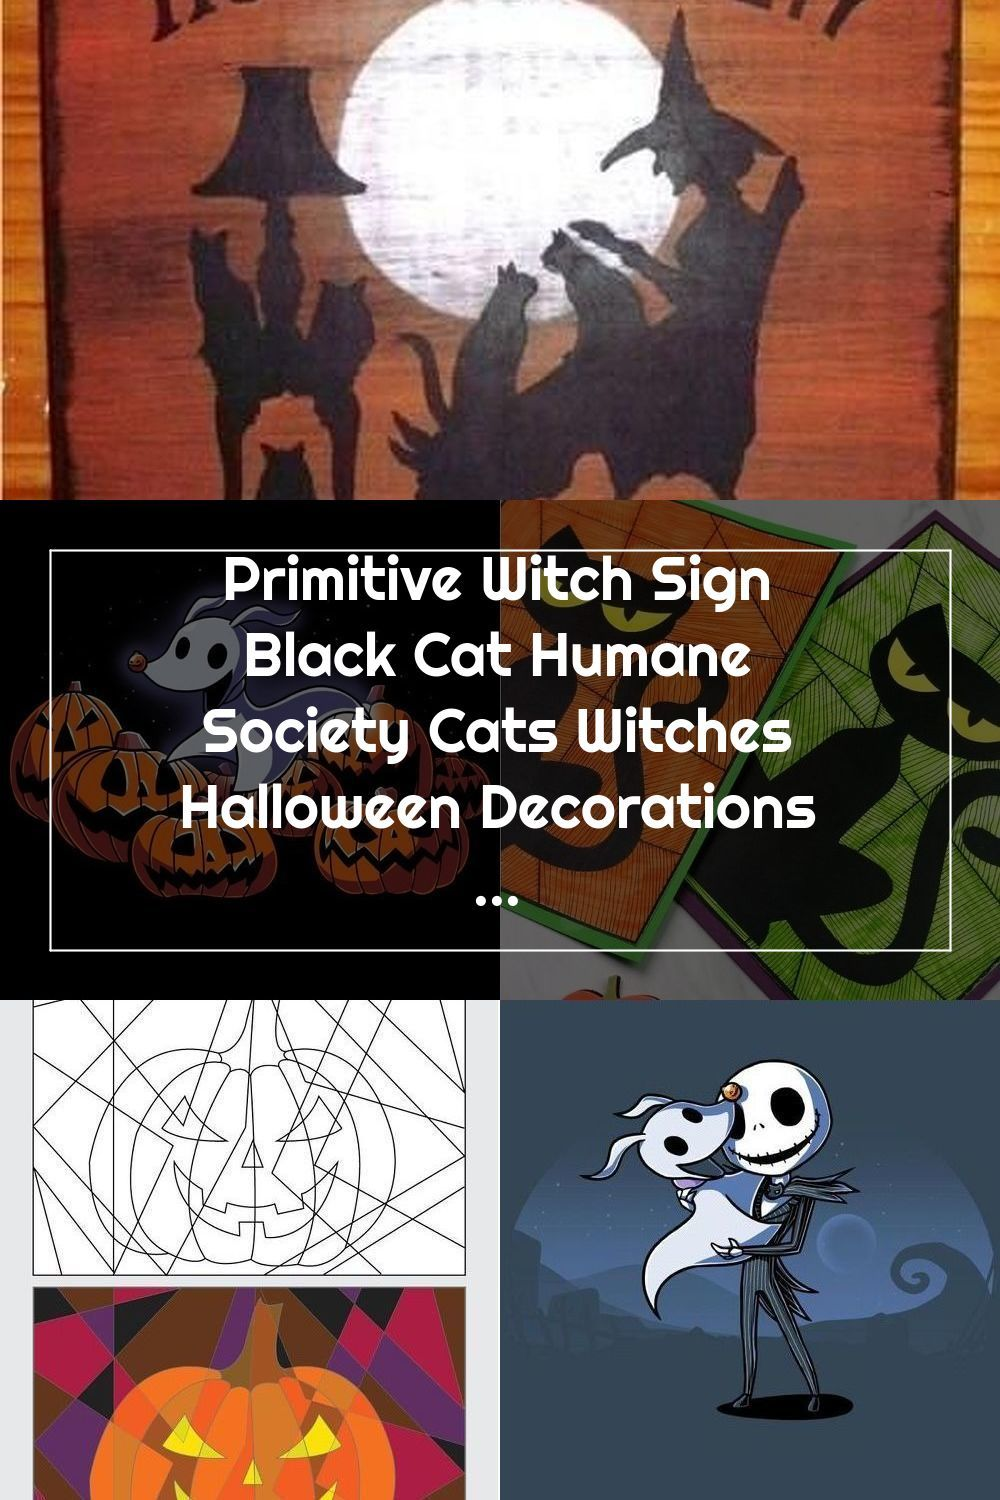 Halloween Humane Society 2020 Primitive Witch Sign Black Cat Humane Society Cats Witches